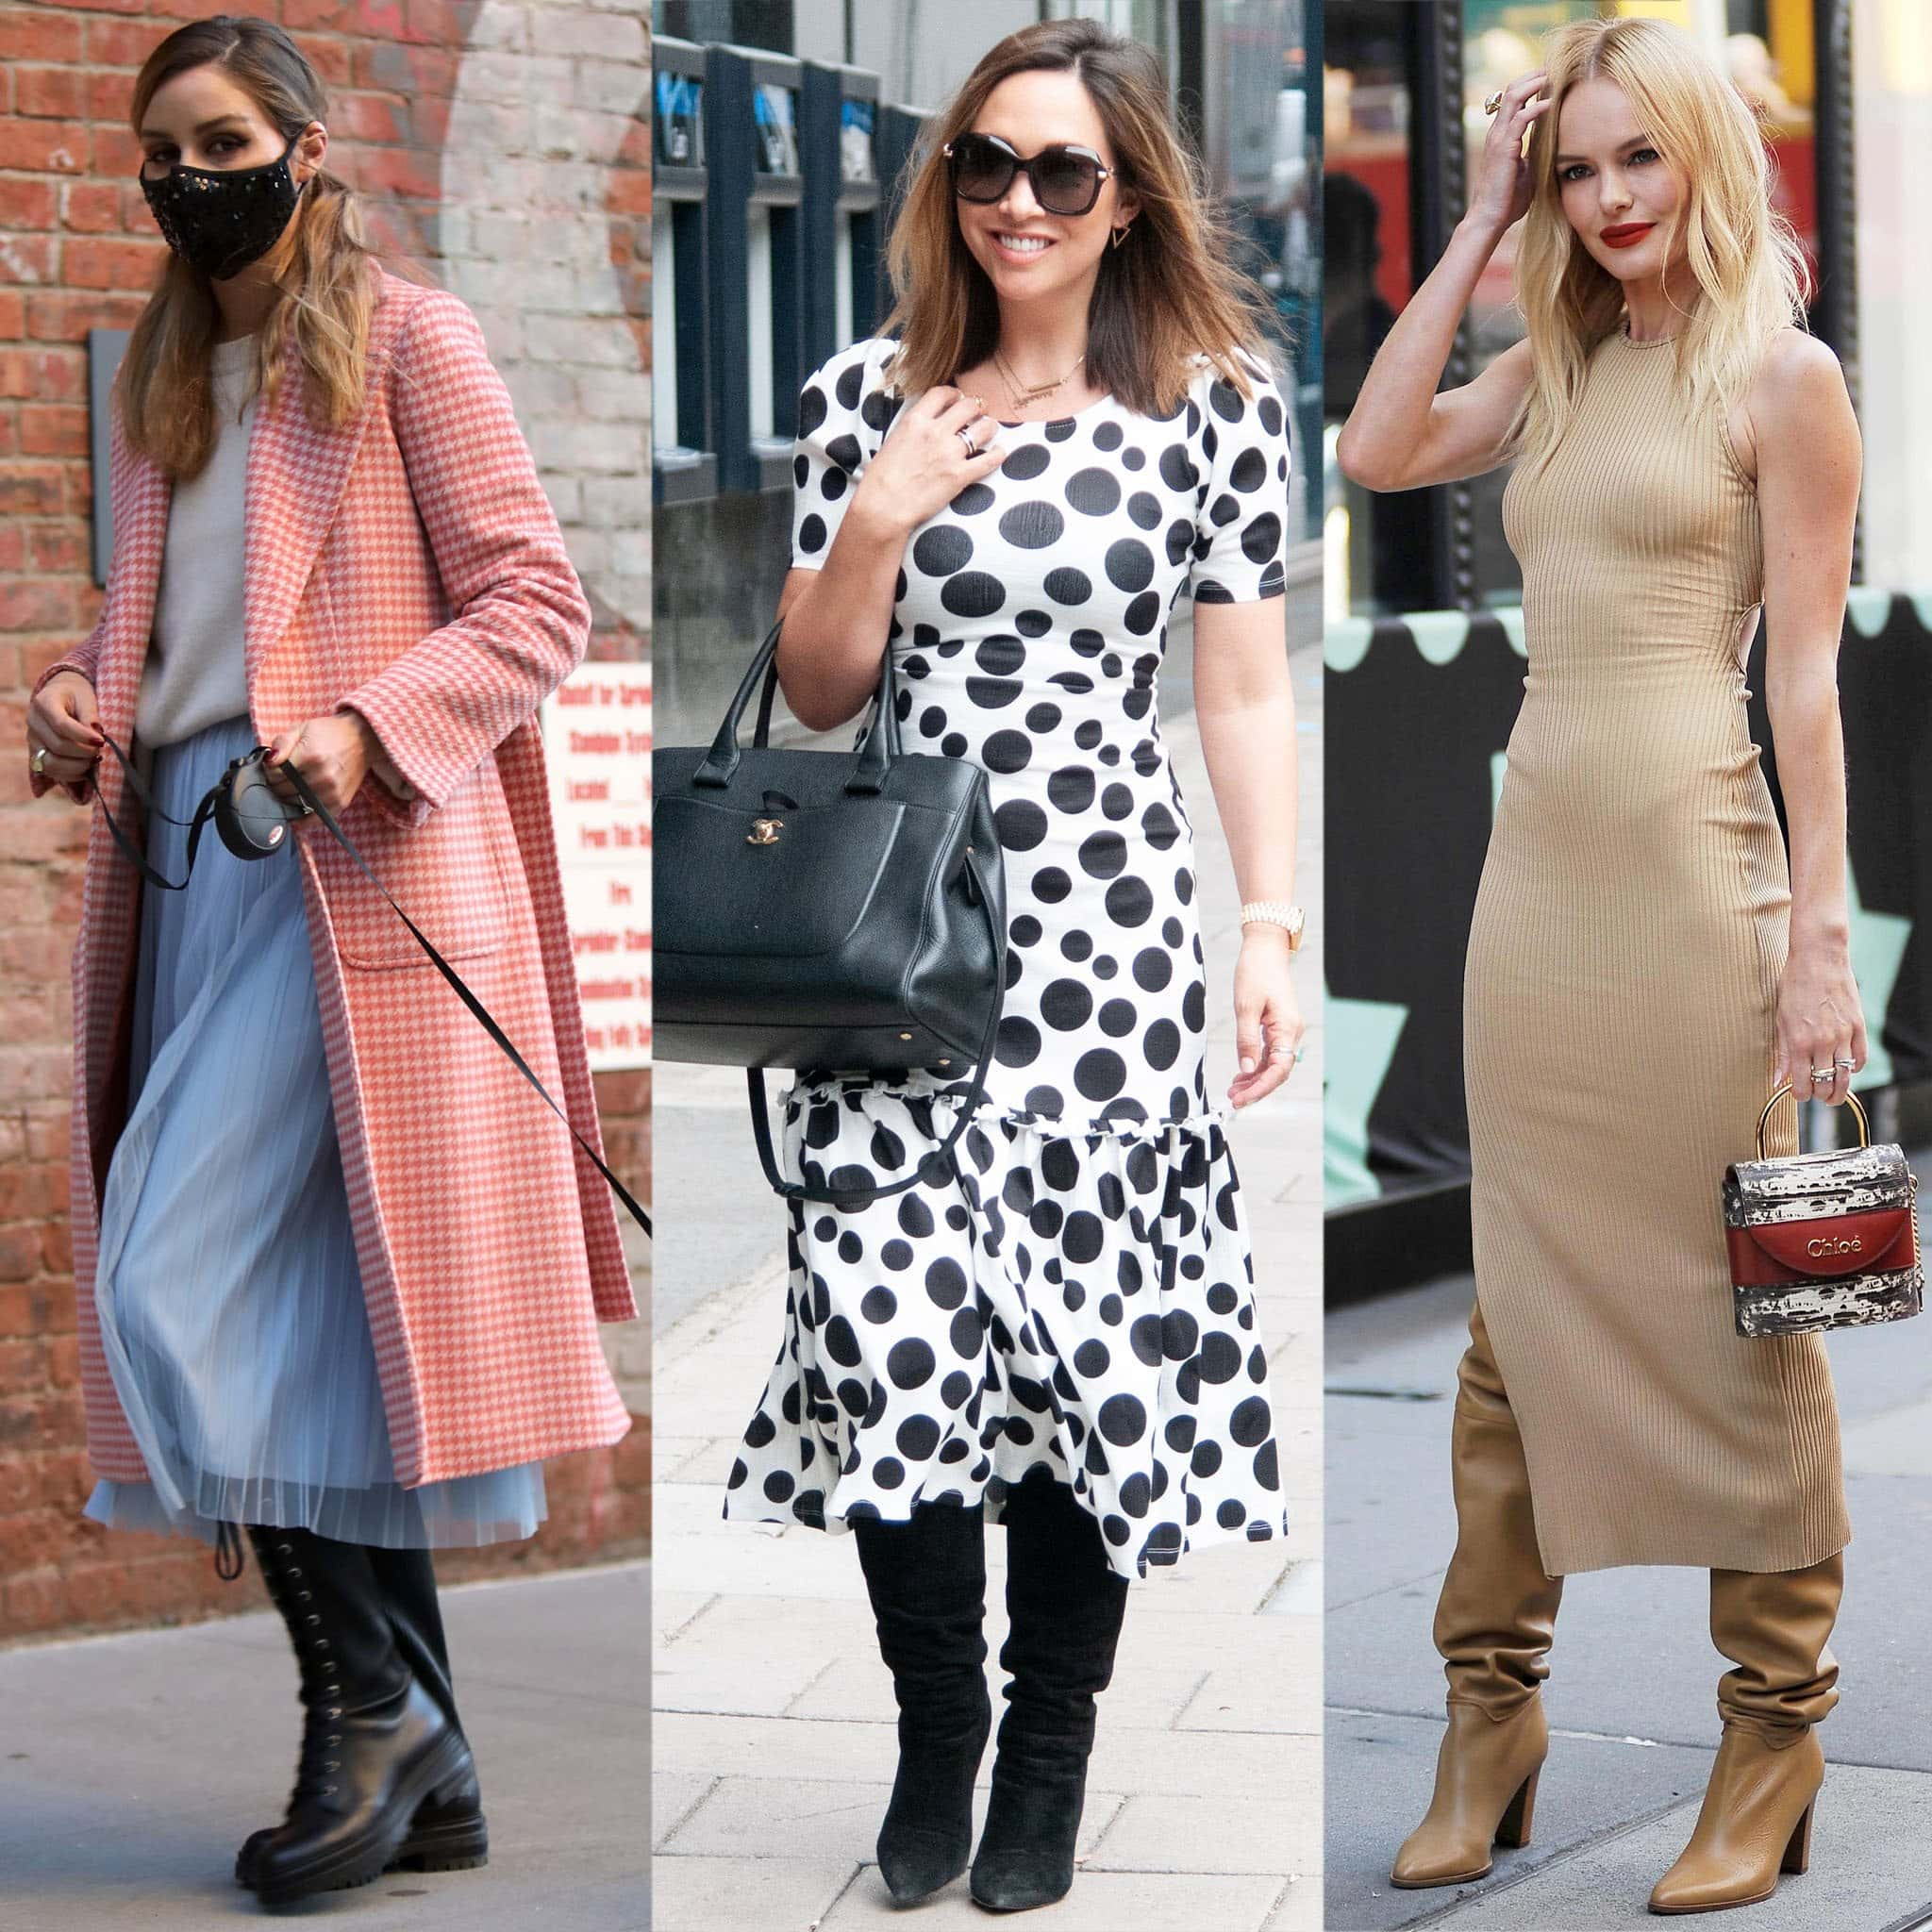 Olivia Palermo, Myleene Klass, and Kate Bosworth teams their knee-high boots with midi dresses